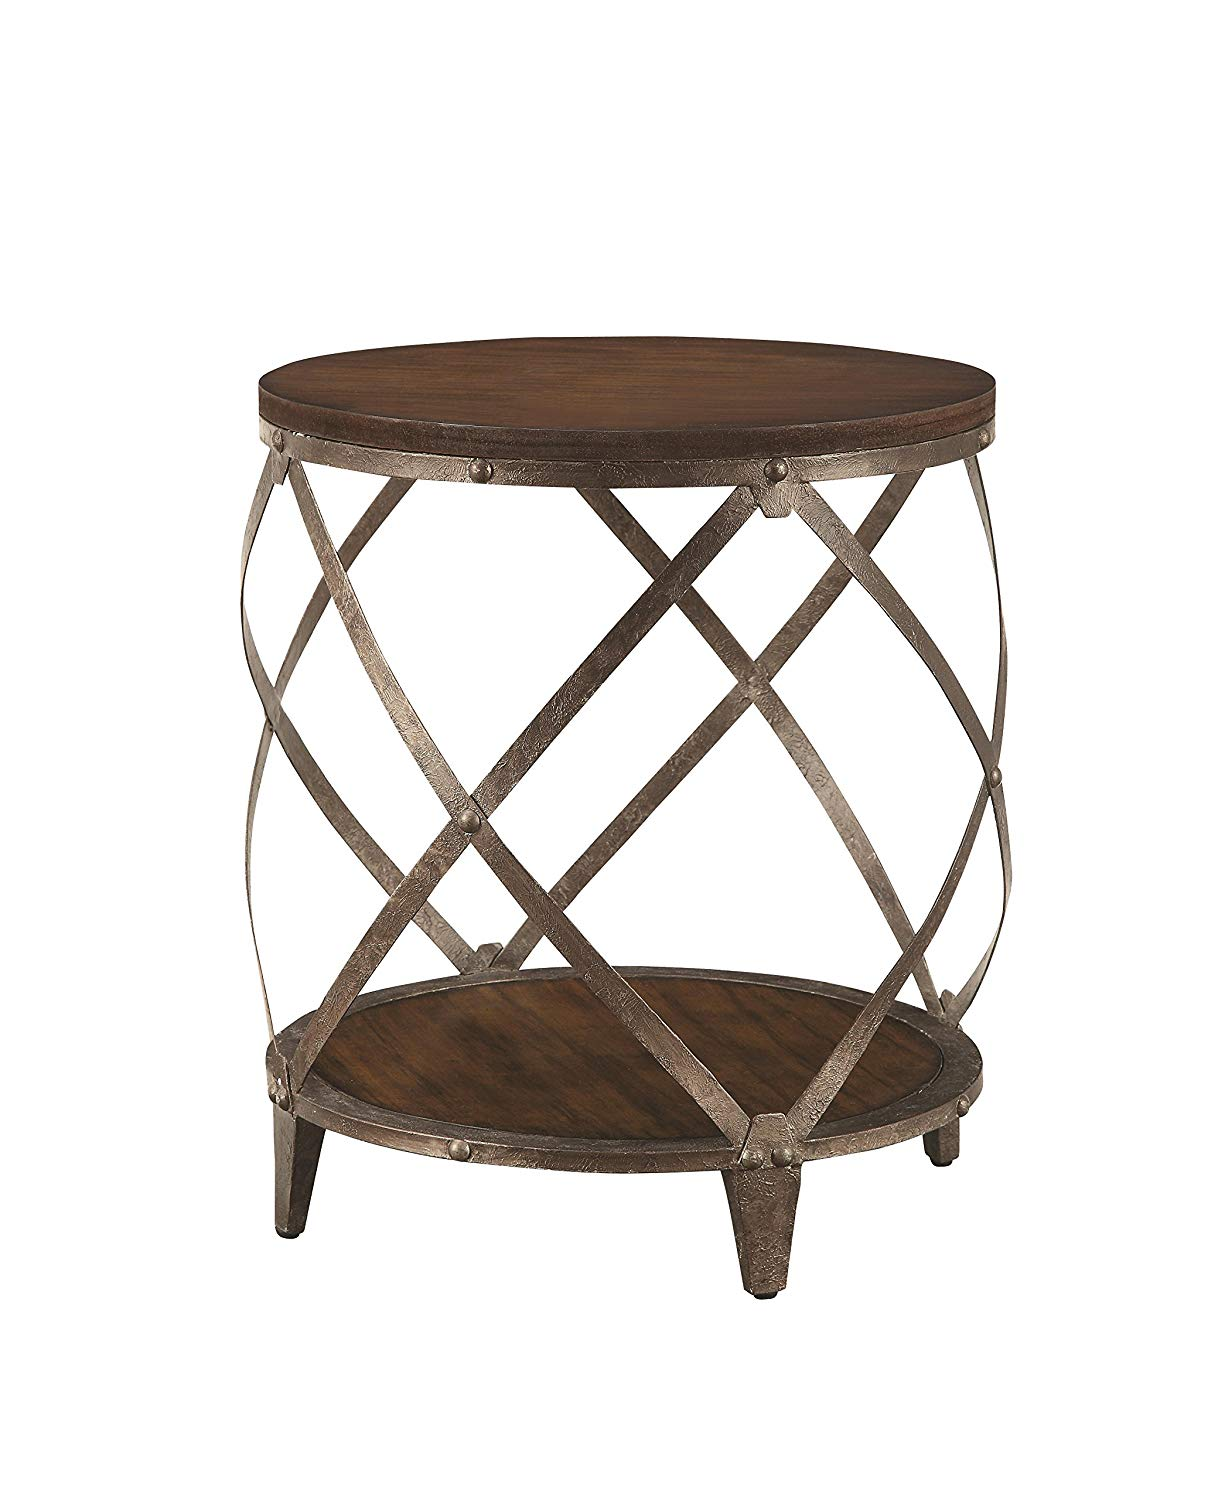 metal accent table with drum shape brown kitchen dining pinebrook round triangle nesting tables bbq built tall bedside lamps iron coffee small wheels ikea antique low vintage